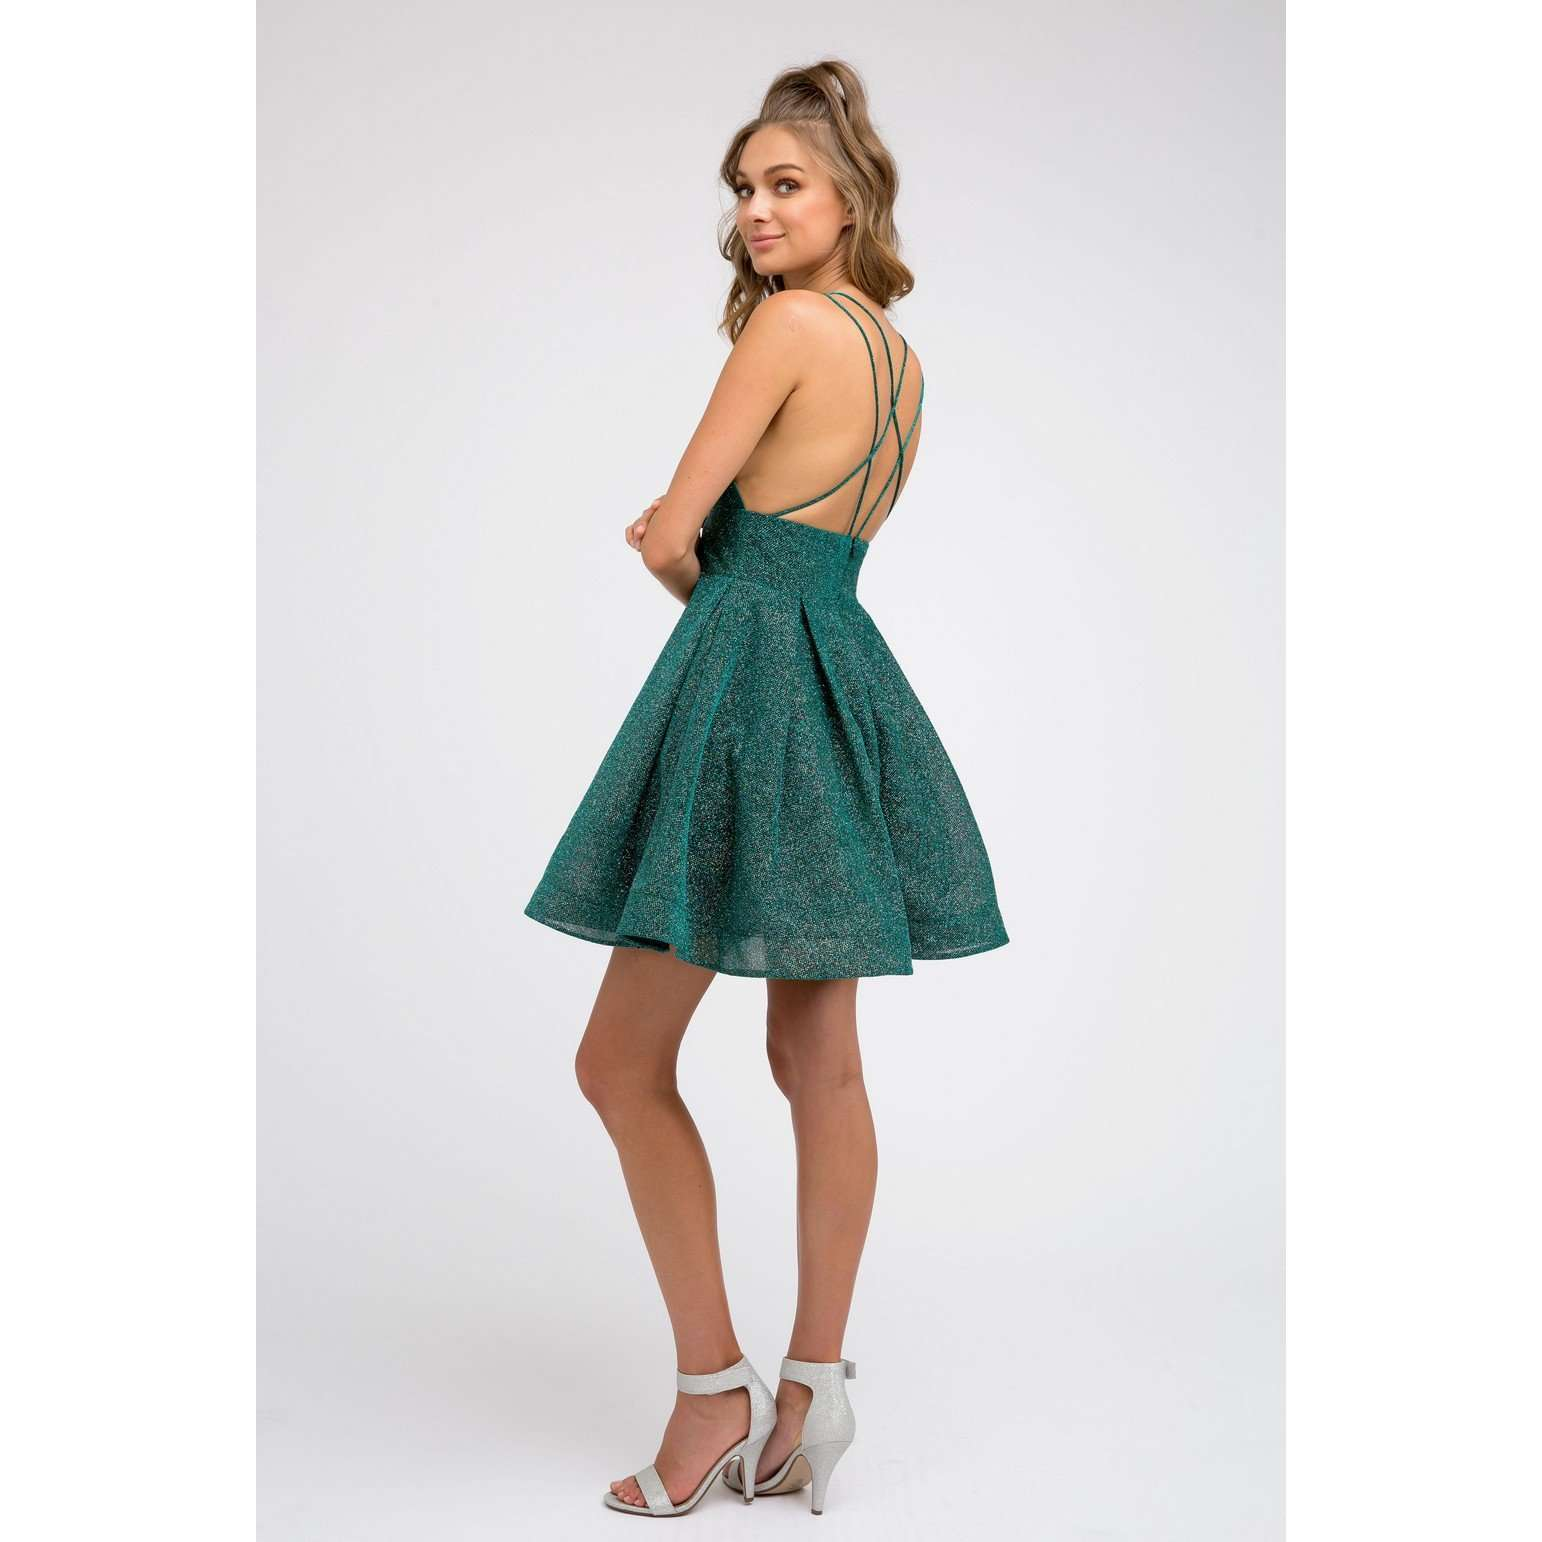 Glitter Fit and Flare Party Dress 850 - Julietdresses